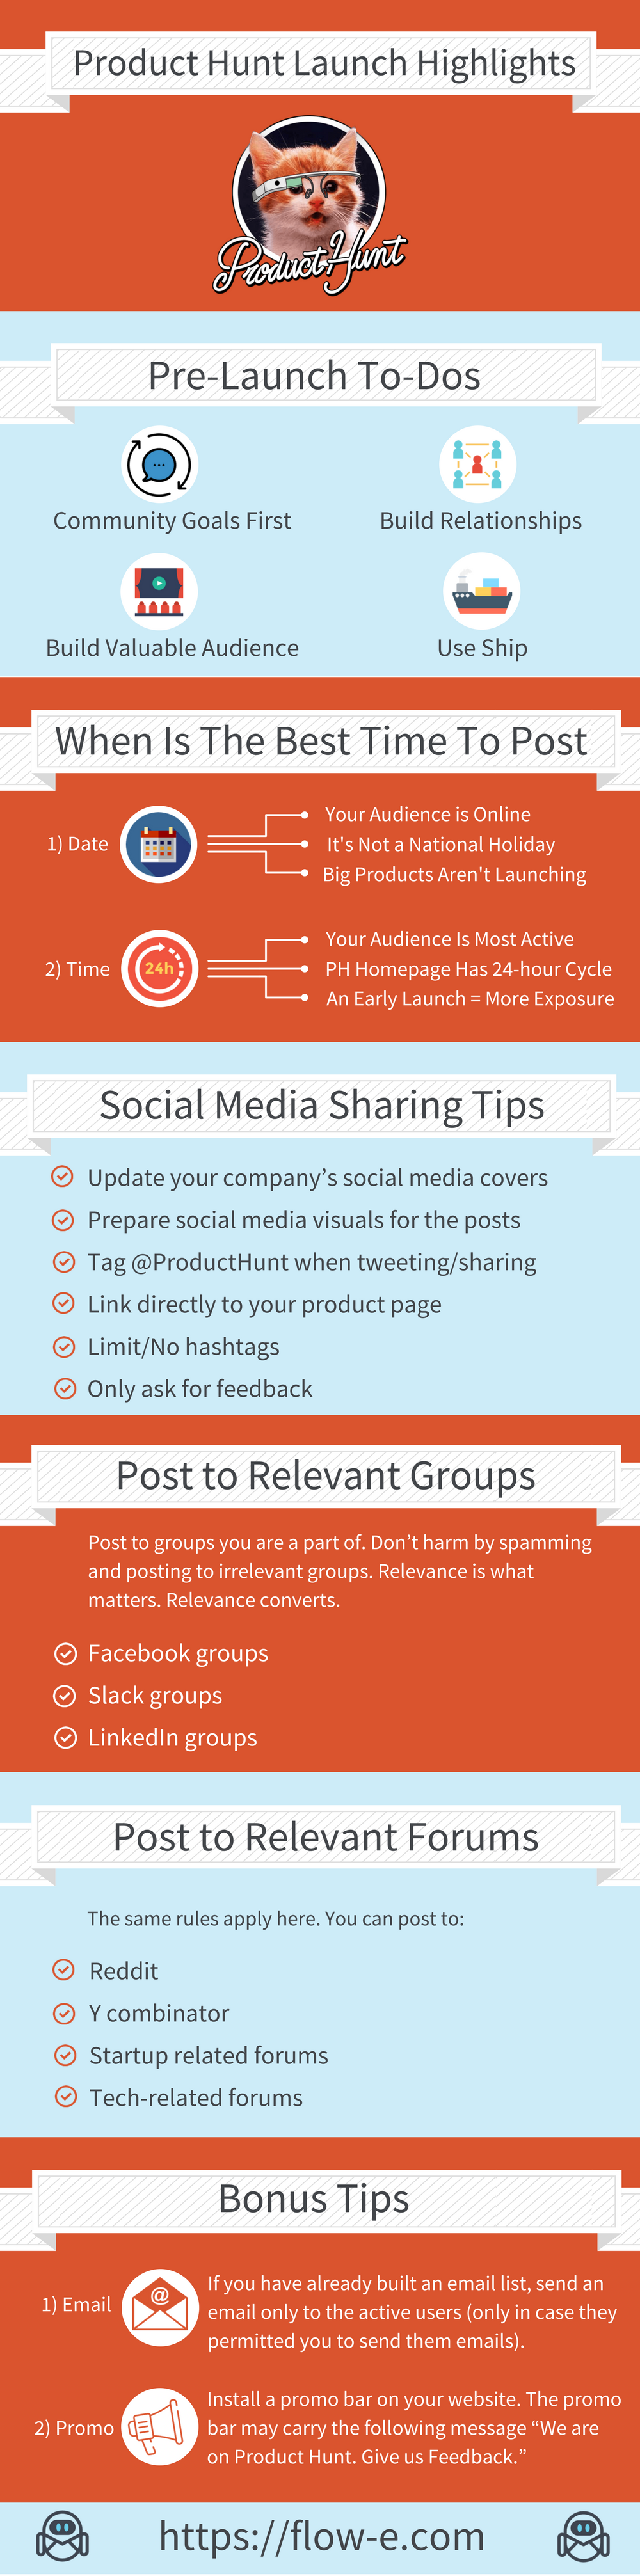 How To Launch On Product Hunt Infographic